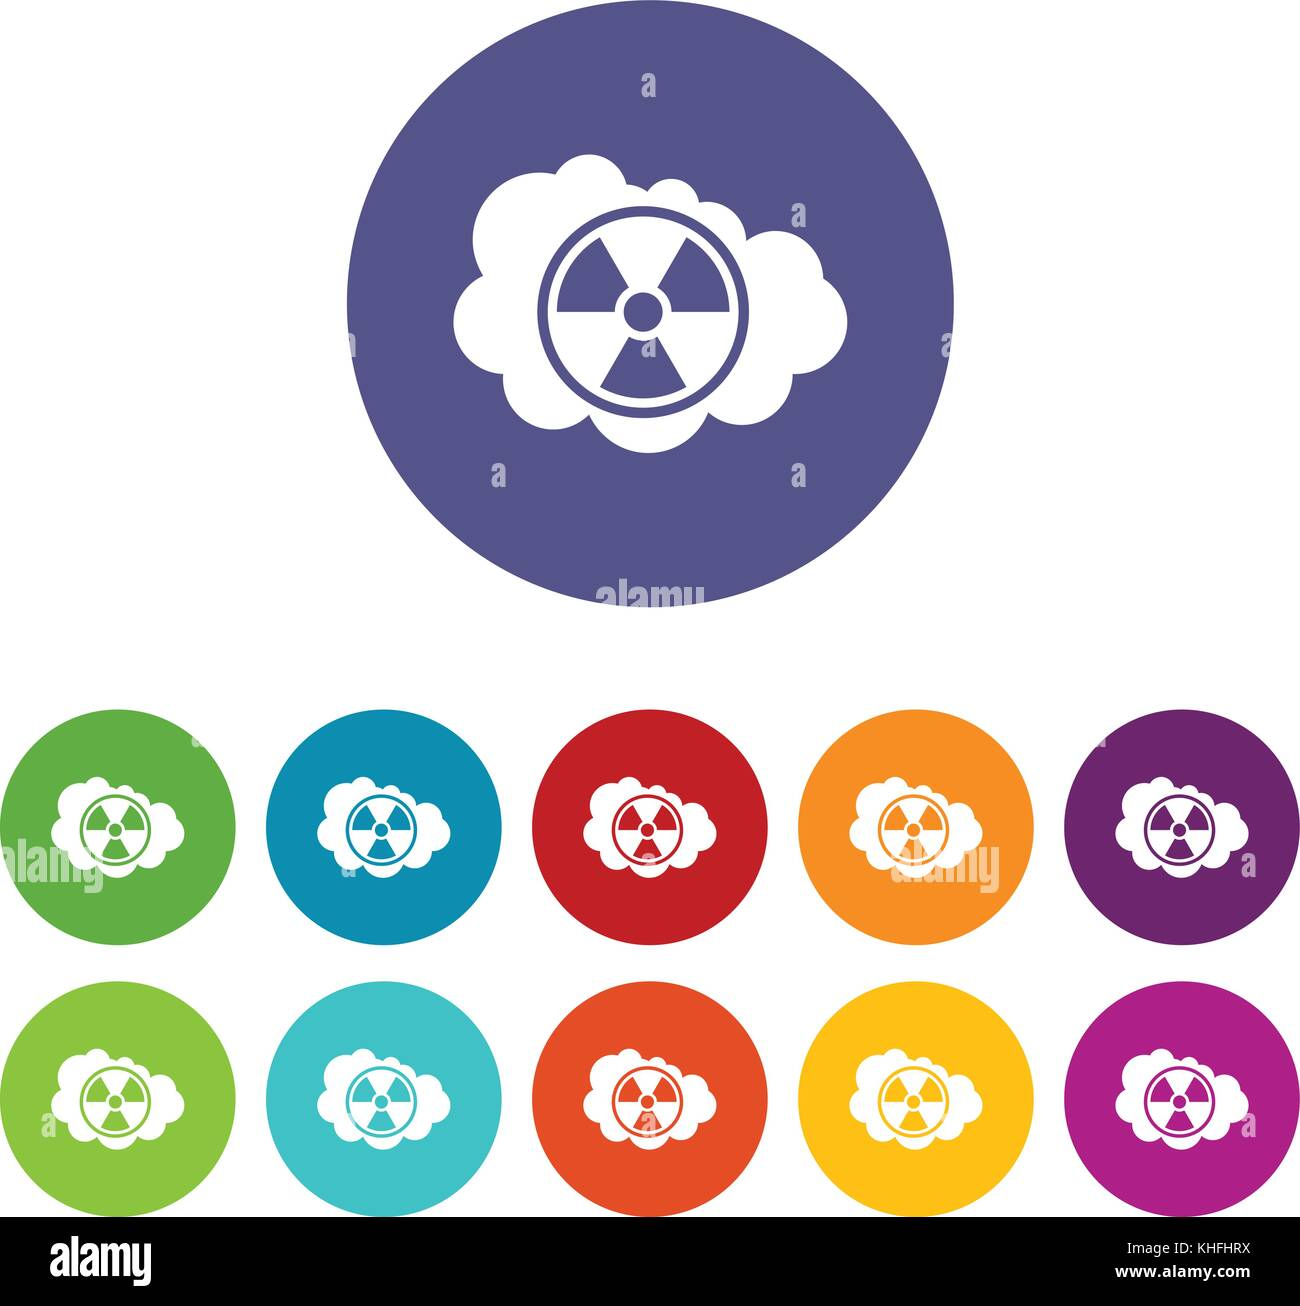 Cloud and radioactive sign set icons in different colors isolated on white background Stock Vector